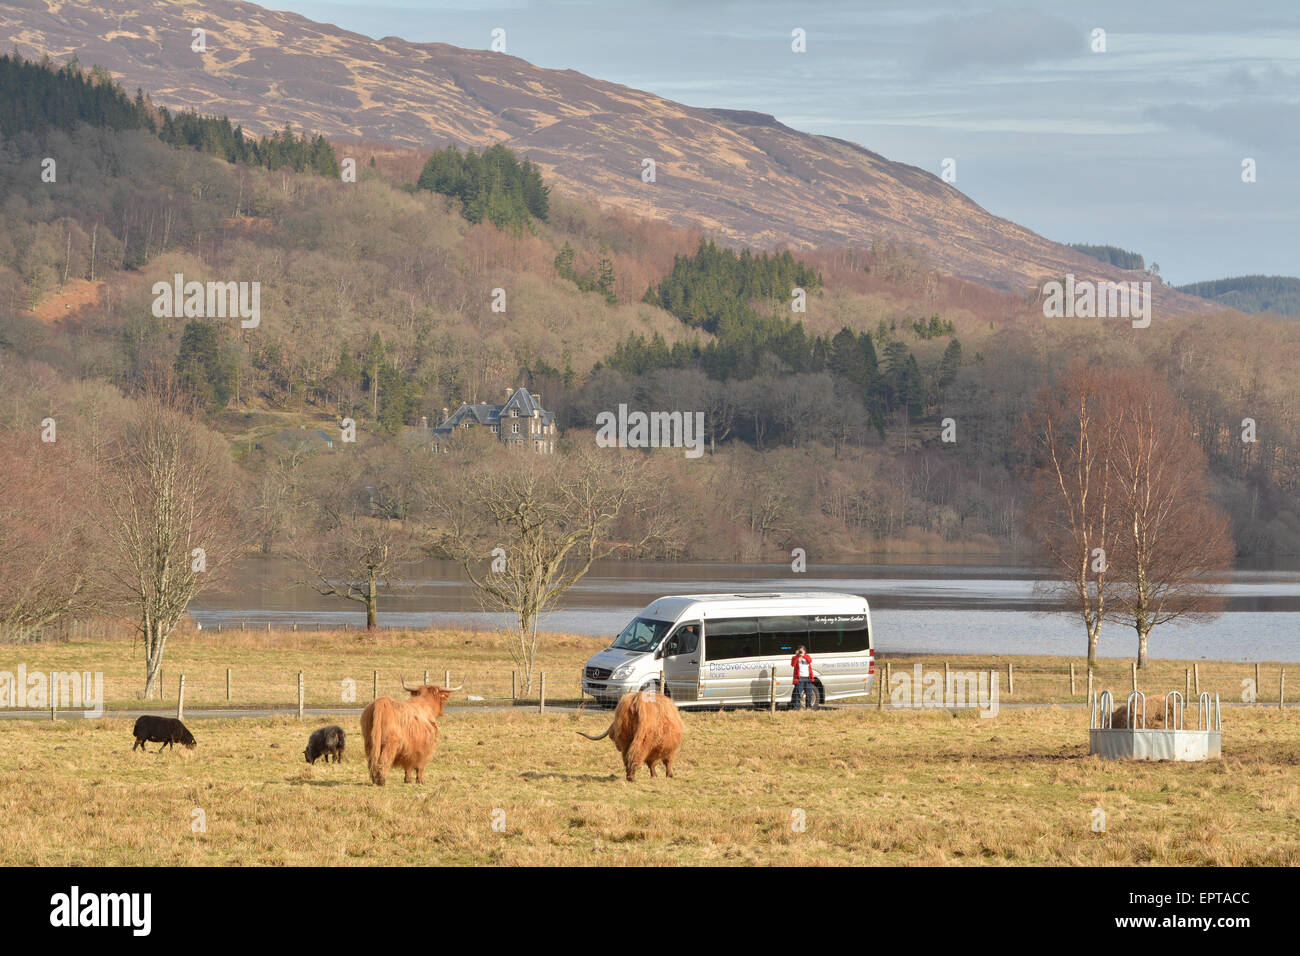 Female tourist taking photos of Highland Cattle by Loch Achray in the Trossachs, Scotland, UK - Stock Image